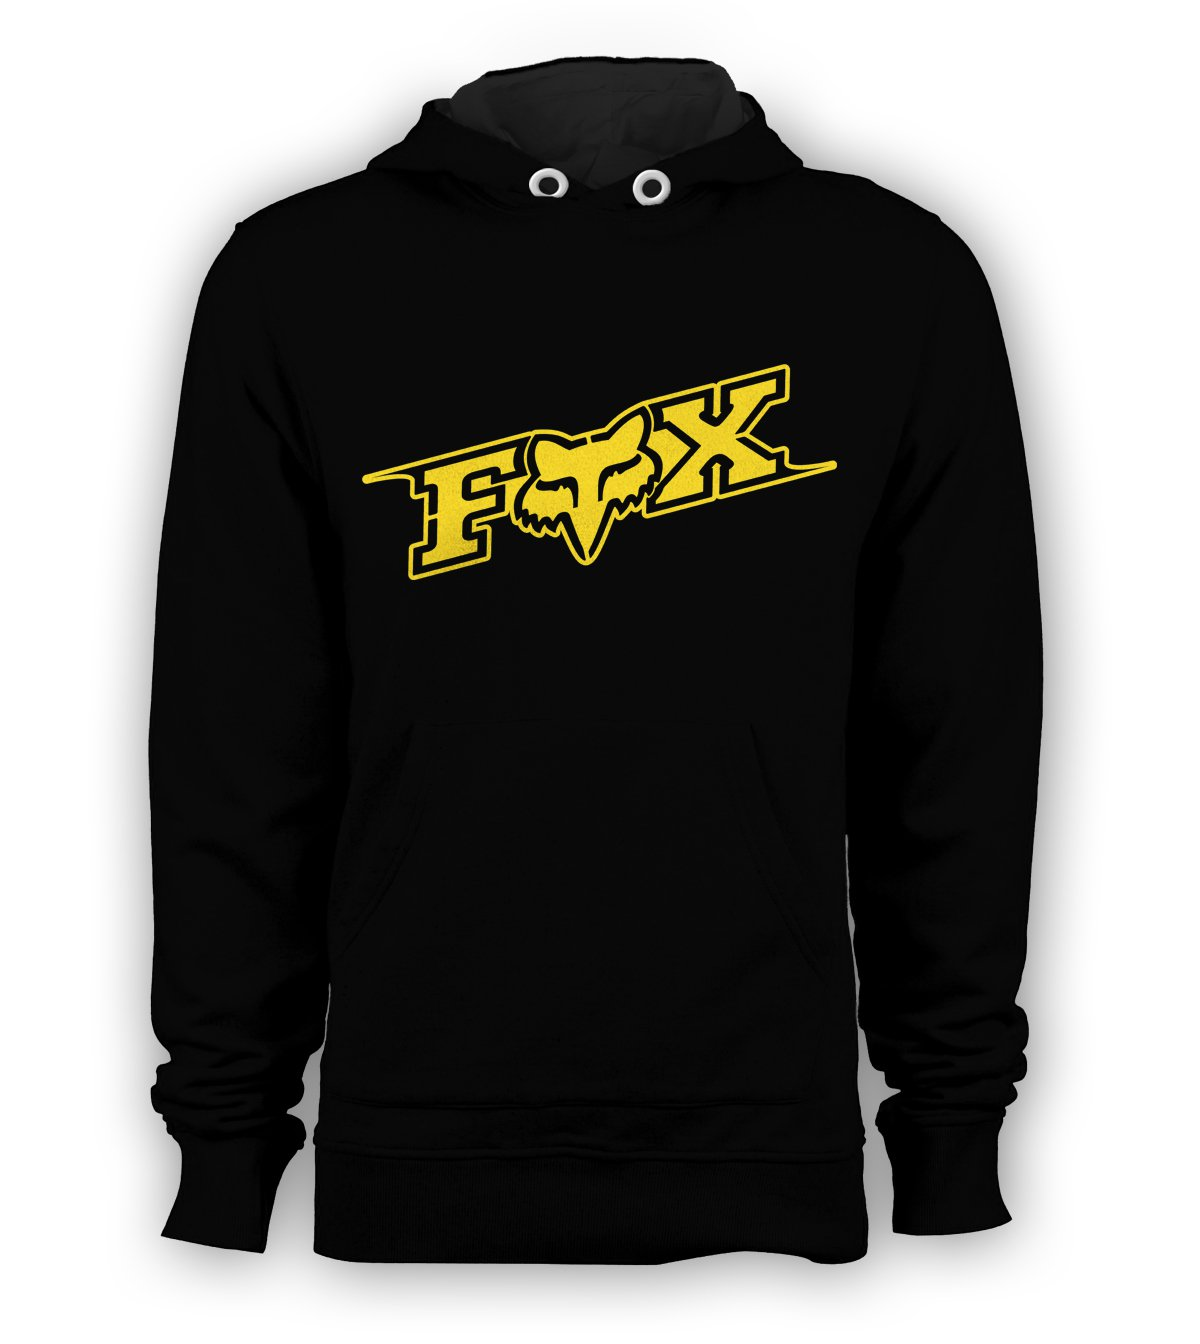 Fox Racing Gold Logo Pullover Hoodie Men BMX Skateboard X-Games Sweatshirts Size S to 3XL New Black